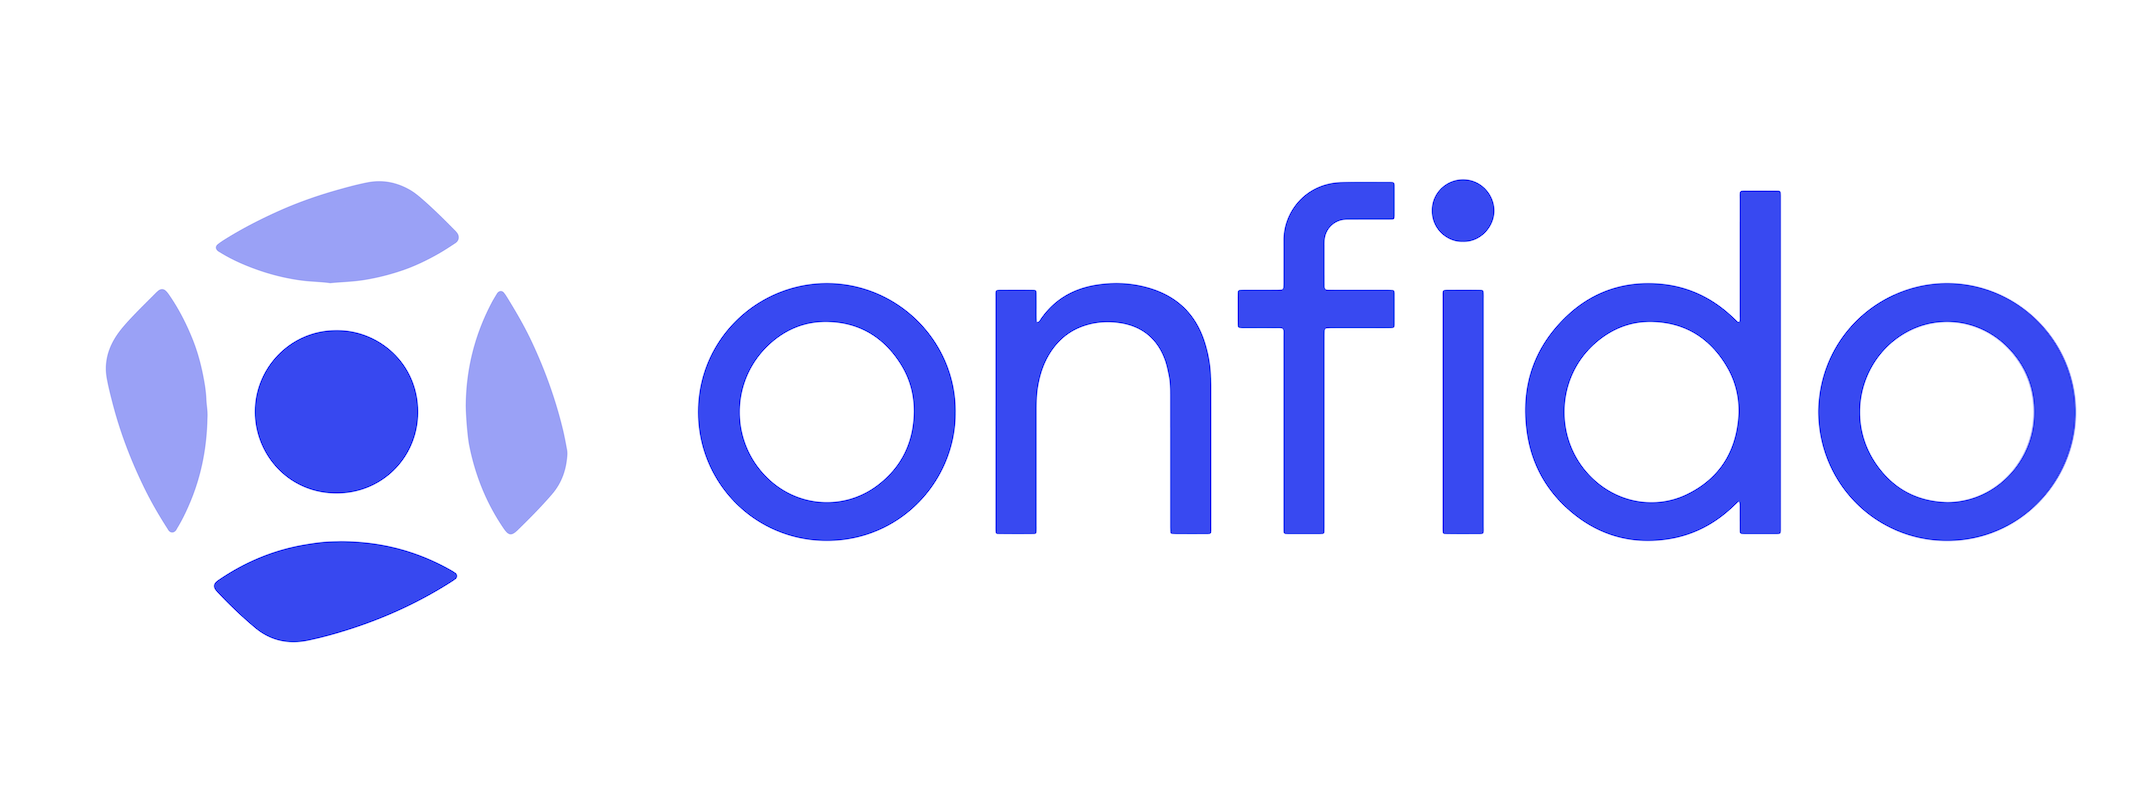 Alior Bank Selects Onfido to Streamline Digital Identity Verification for Onboarding New Customers Through Its Mobile Application